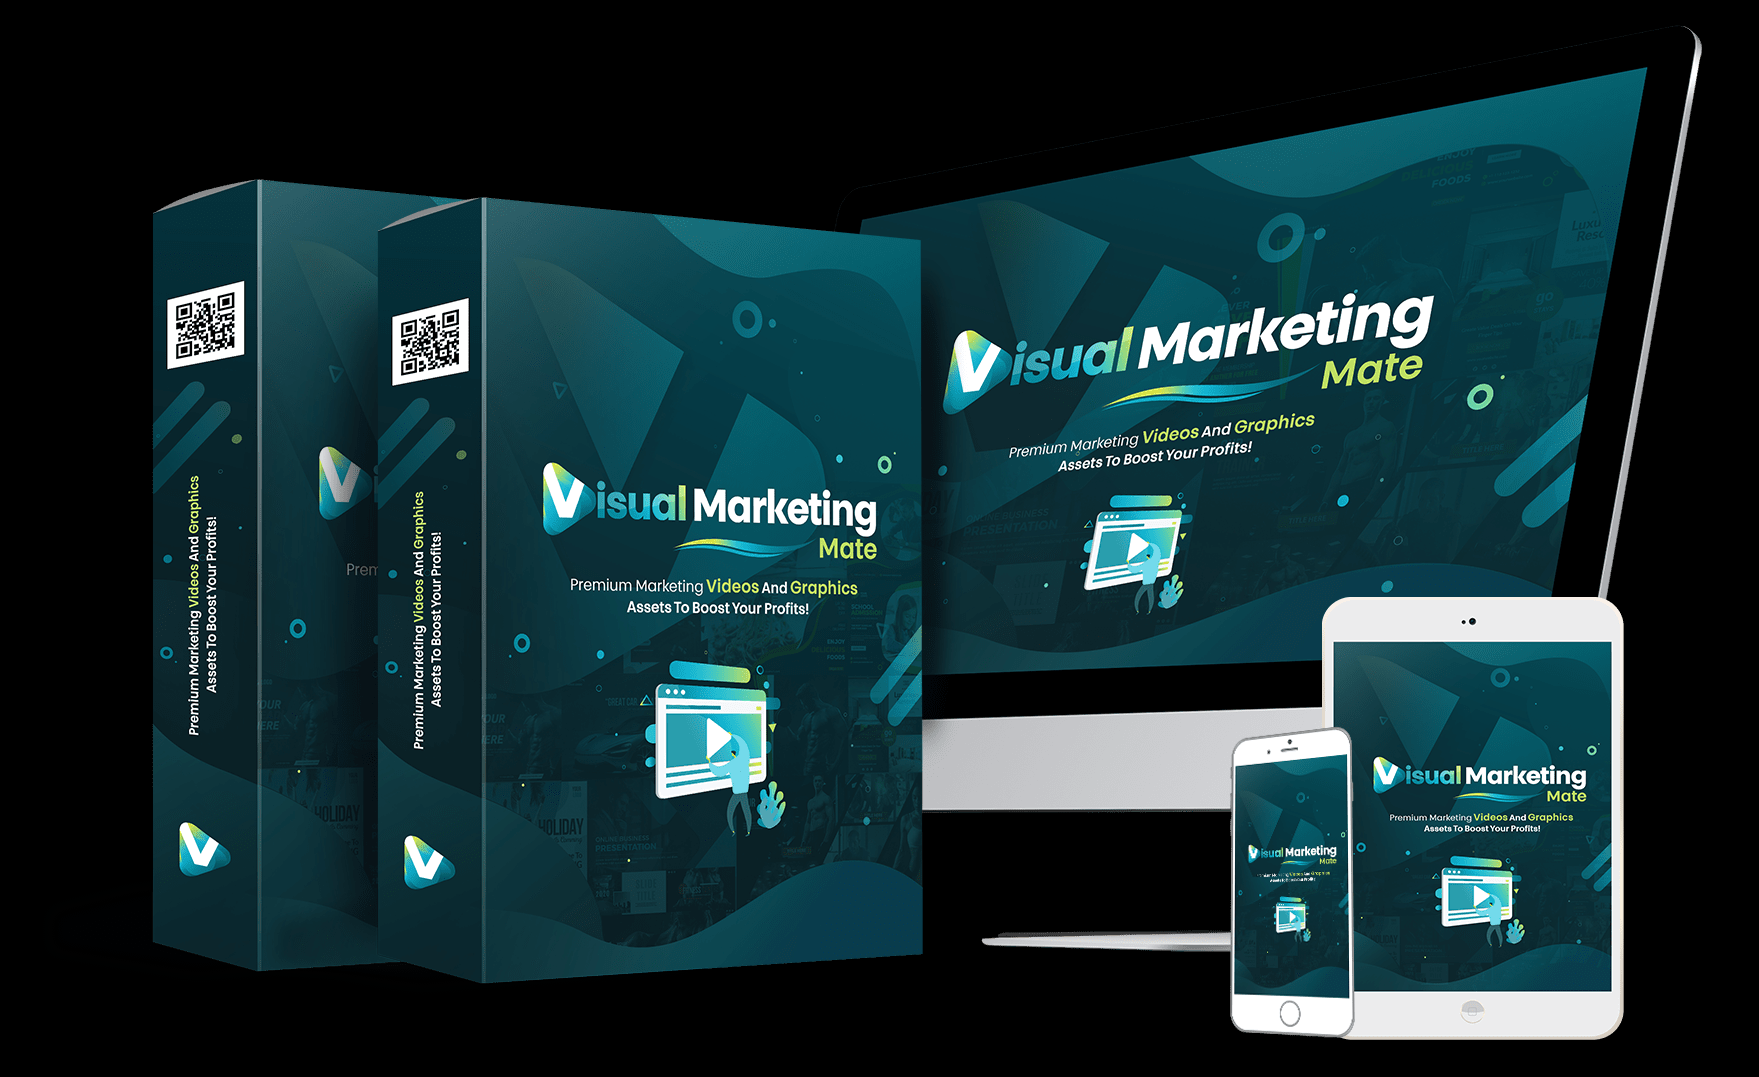 Visual Marketing Mate Review